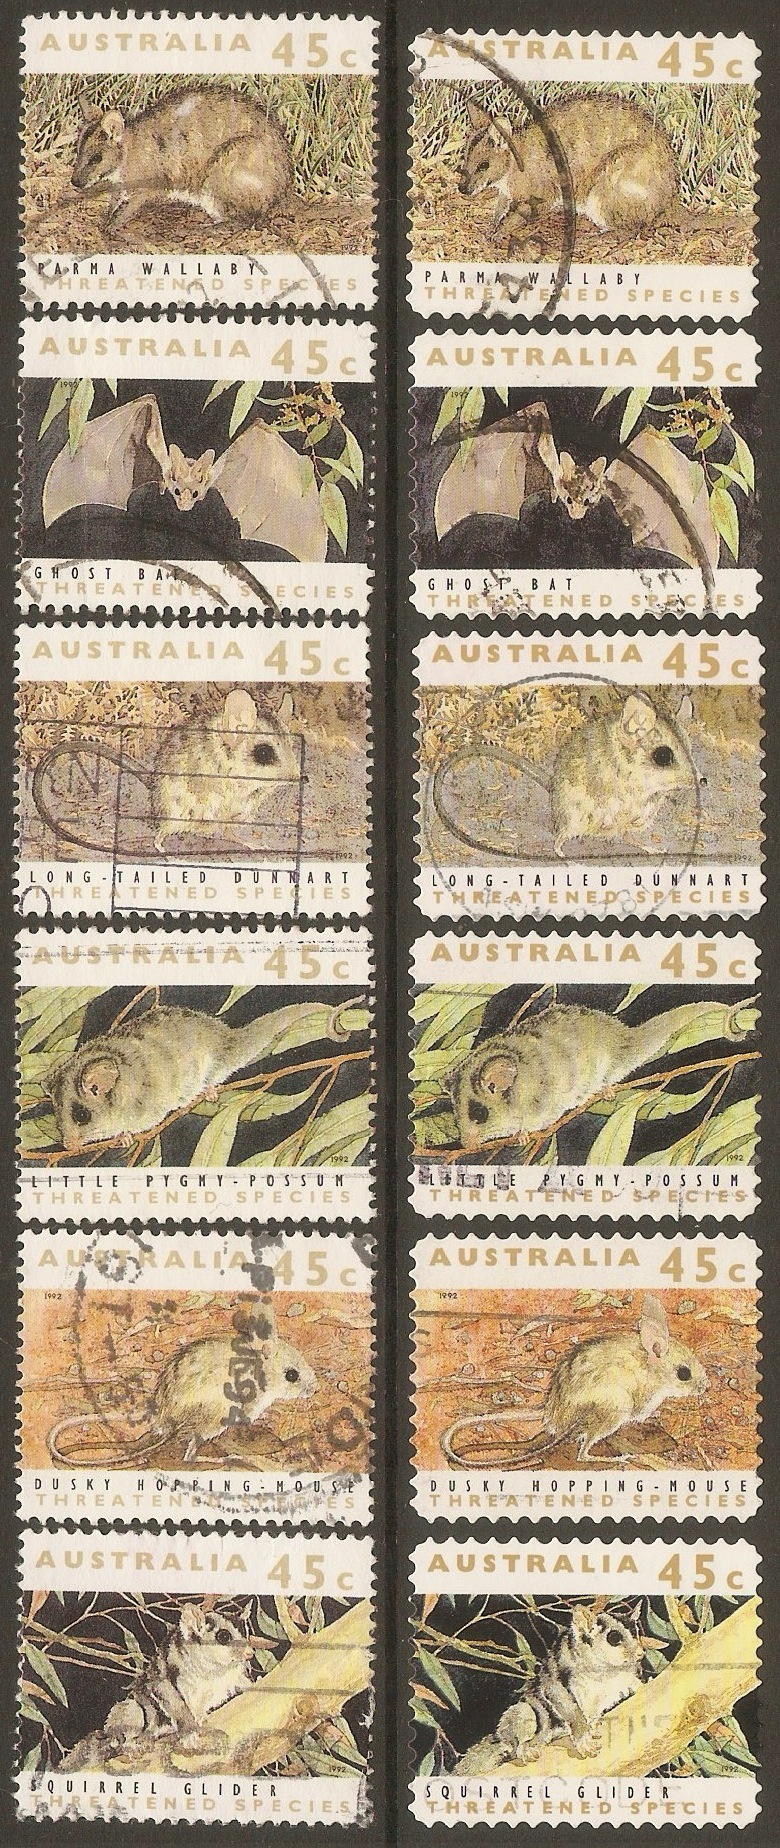 Australia 1992 Threatened Species set. SG1312-SG1317.